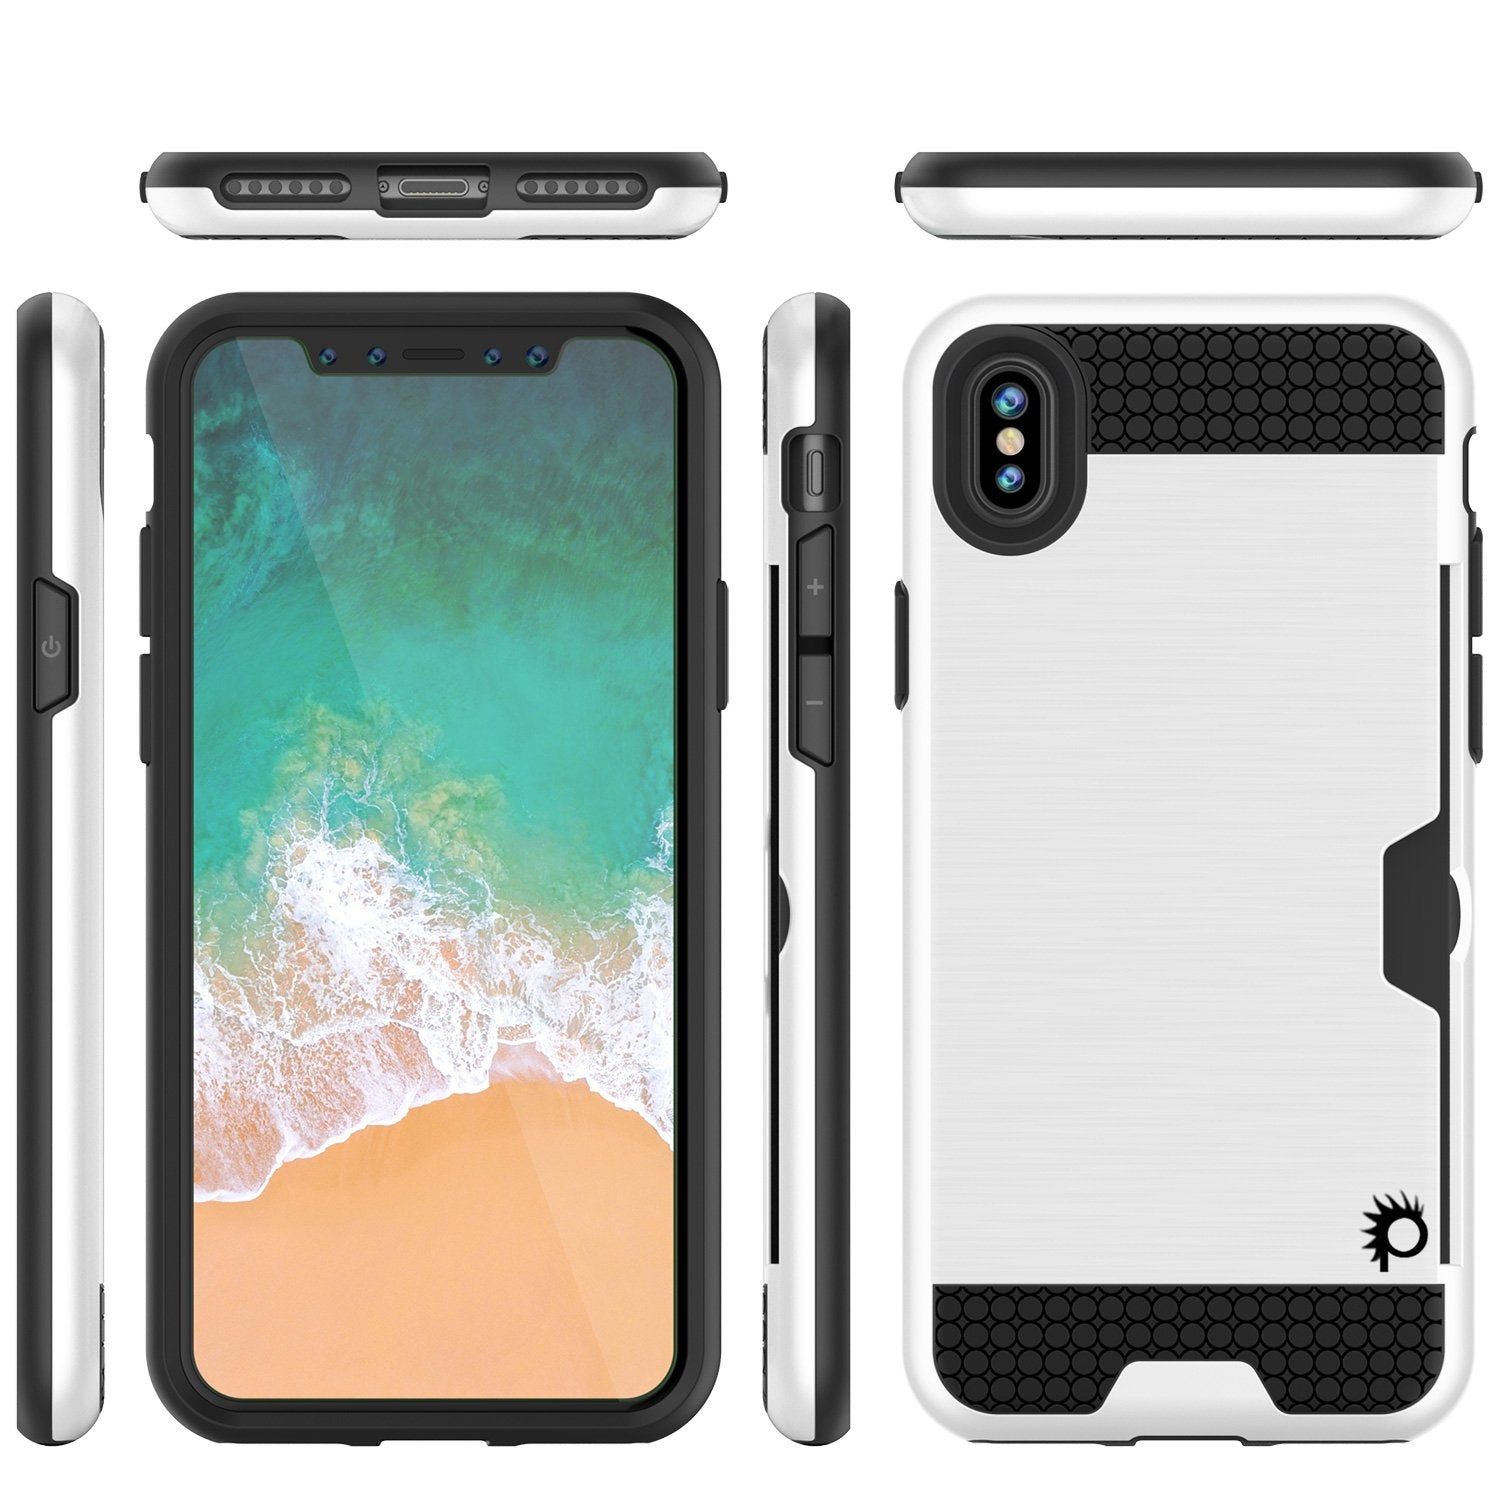 iPhone X Case, PUNKcase [SLOT Series] Slim Fit Dual-Layer Armor Cover & Tempered Glass PUNKSHIELD Screen Protector for Apple iPhone X [White]